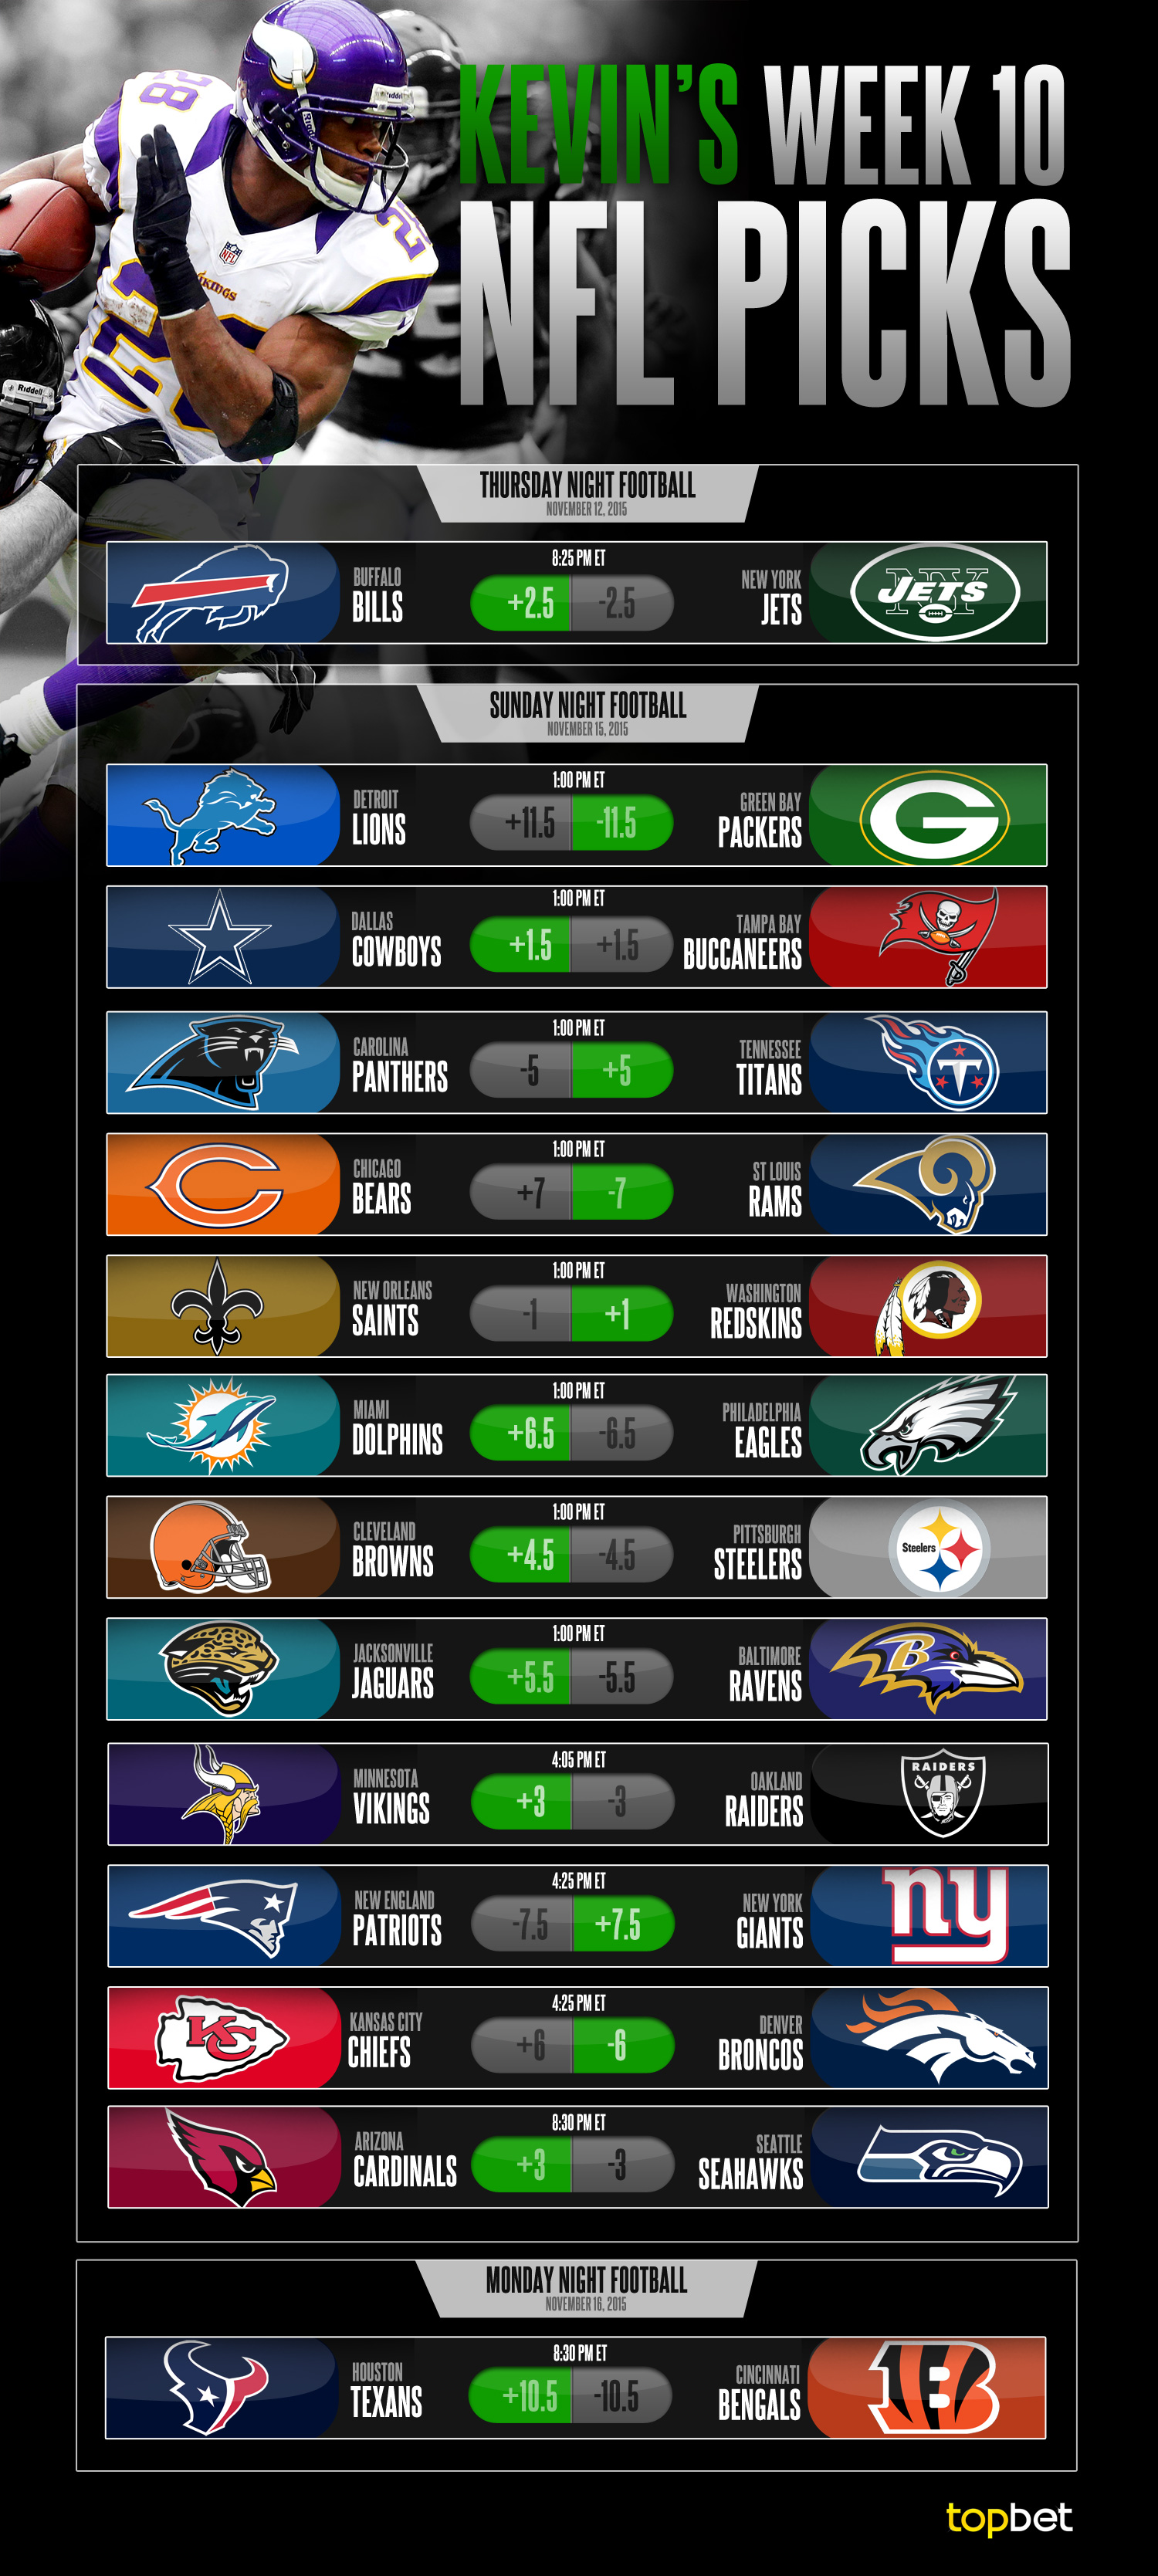 AccuScore's odds to make NFL playoffs